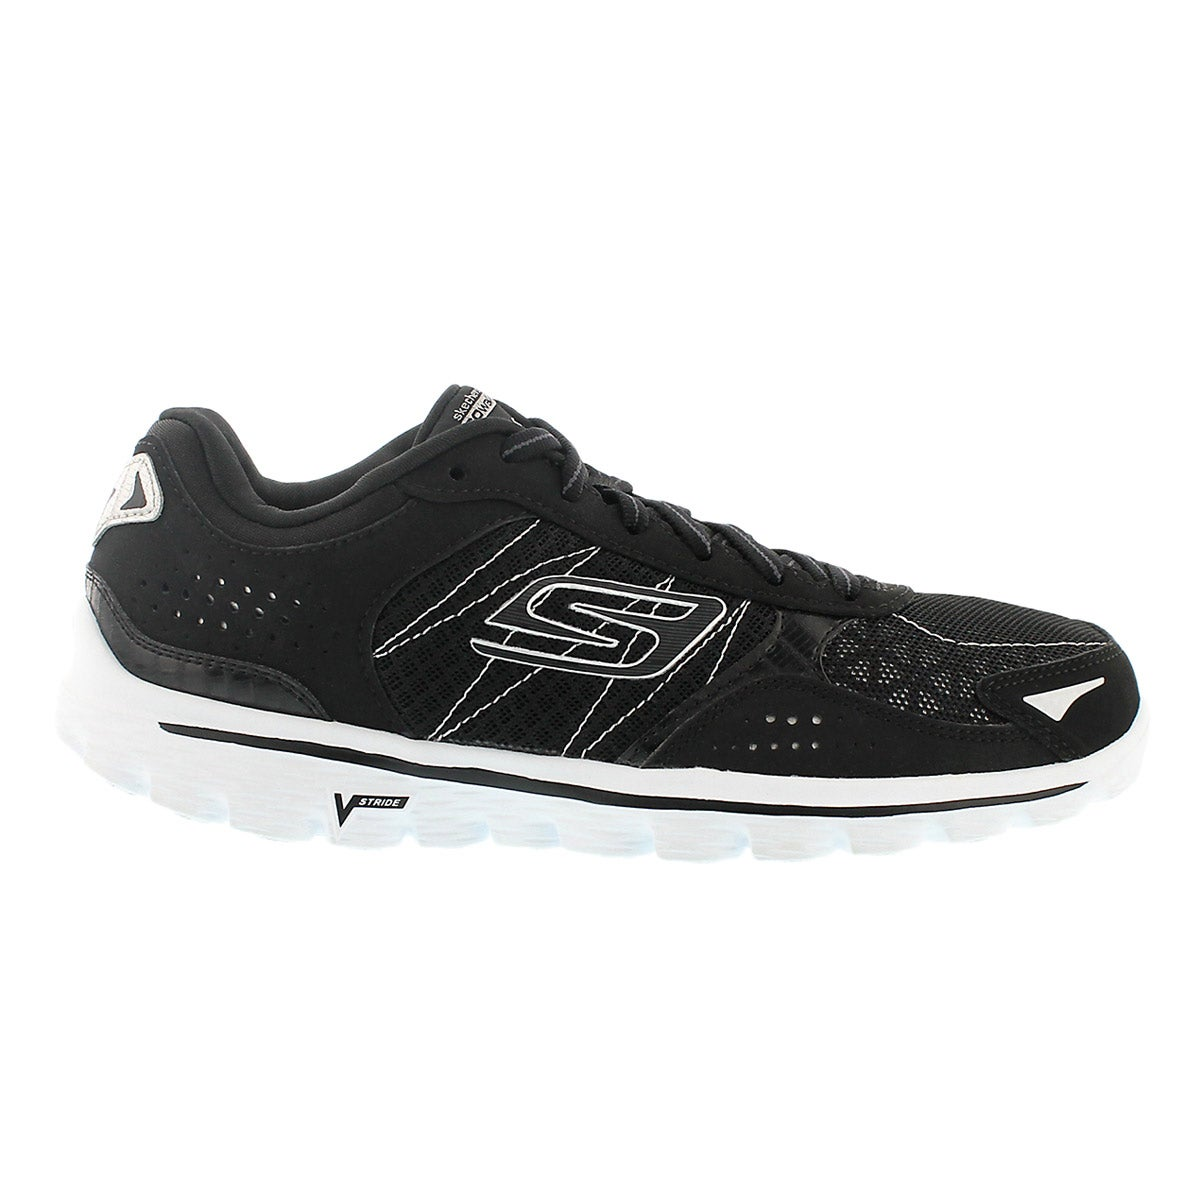 Lds GOwalk 2 Flash blk walking shoe